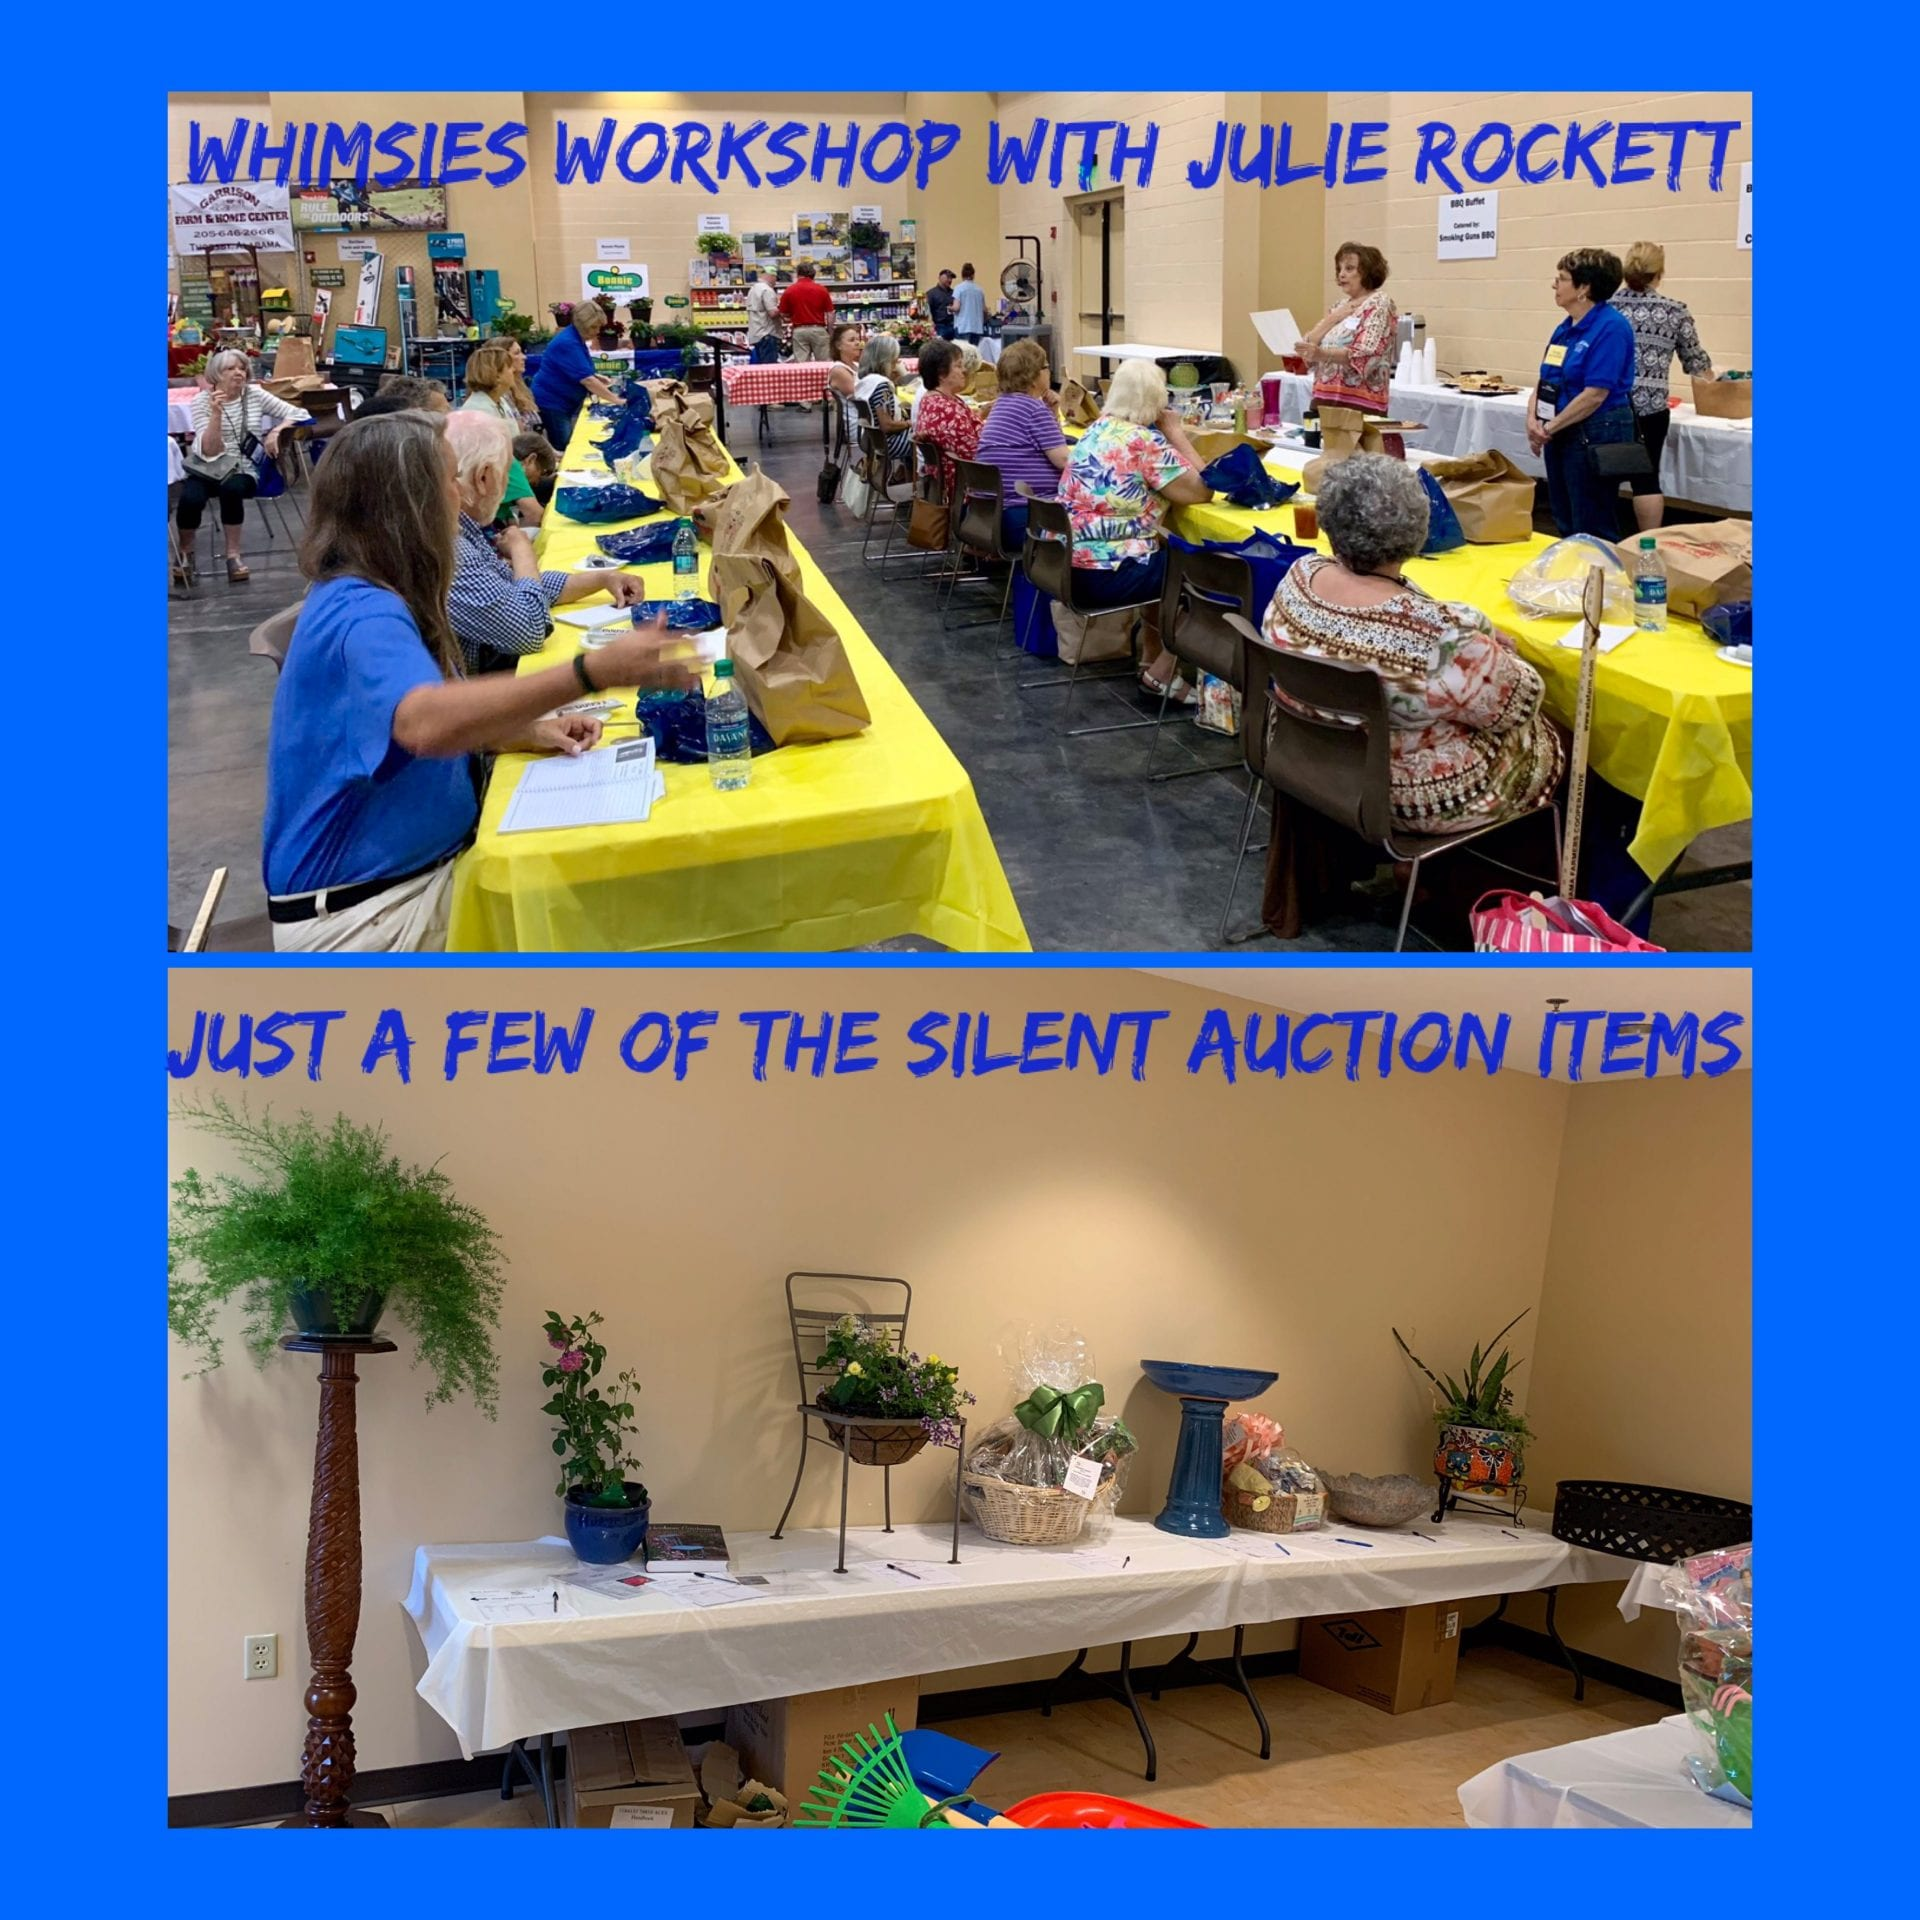 Collage of workshops and silent auction